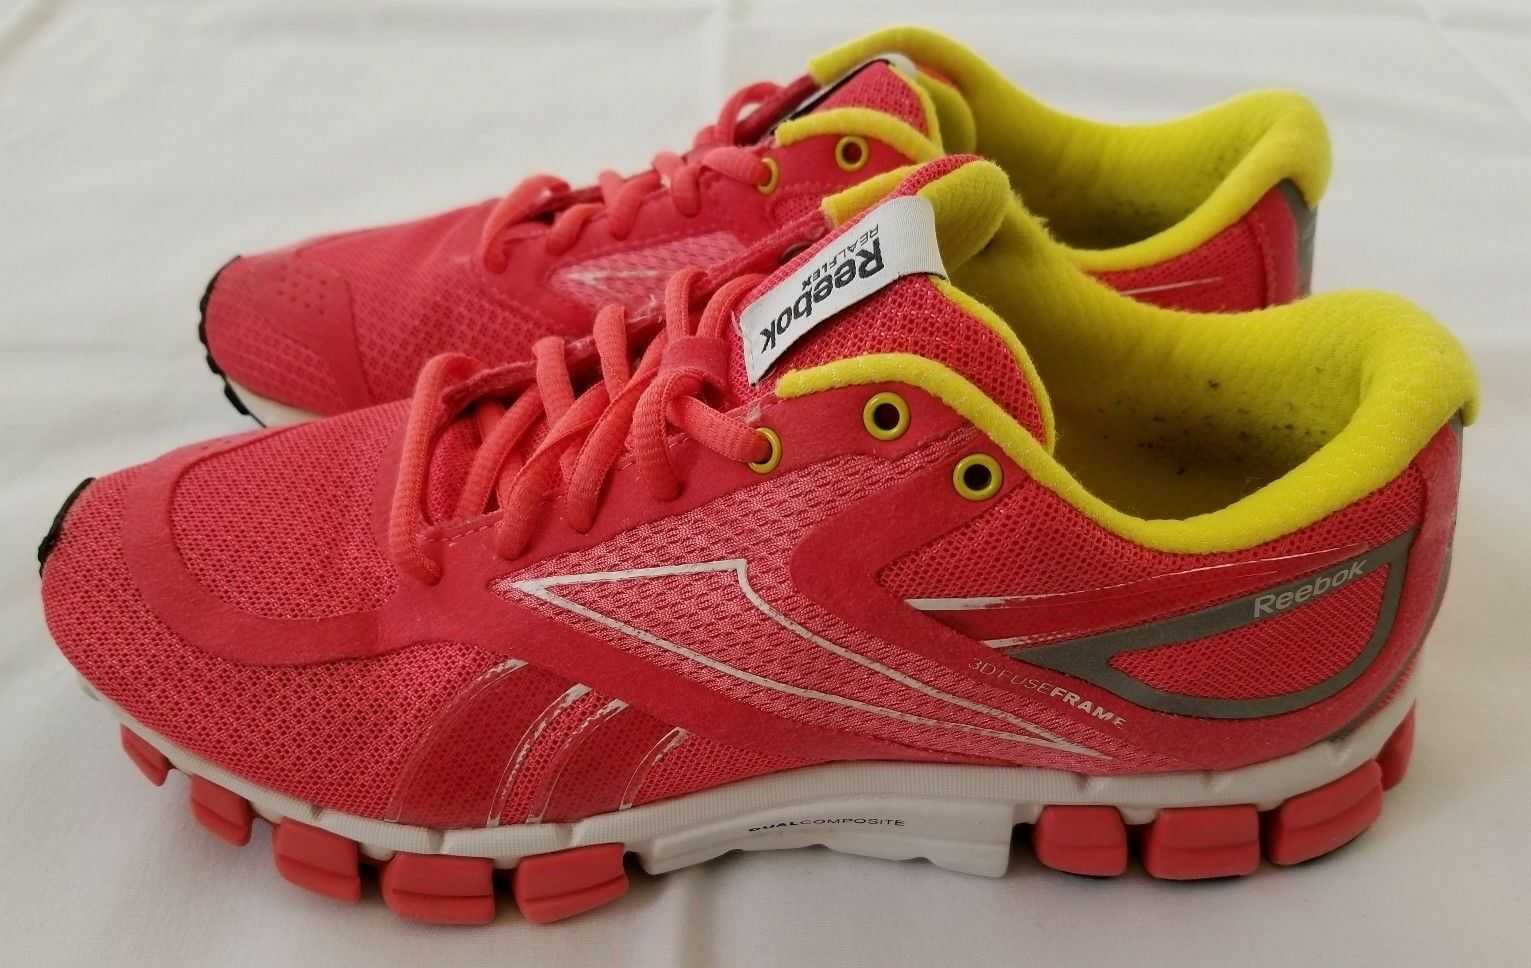 Womens Size 7 Pink Reebok RealFlex Select 3D Fuseframe Running shoes (pre-owned)